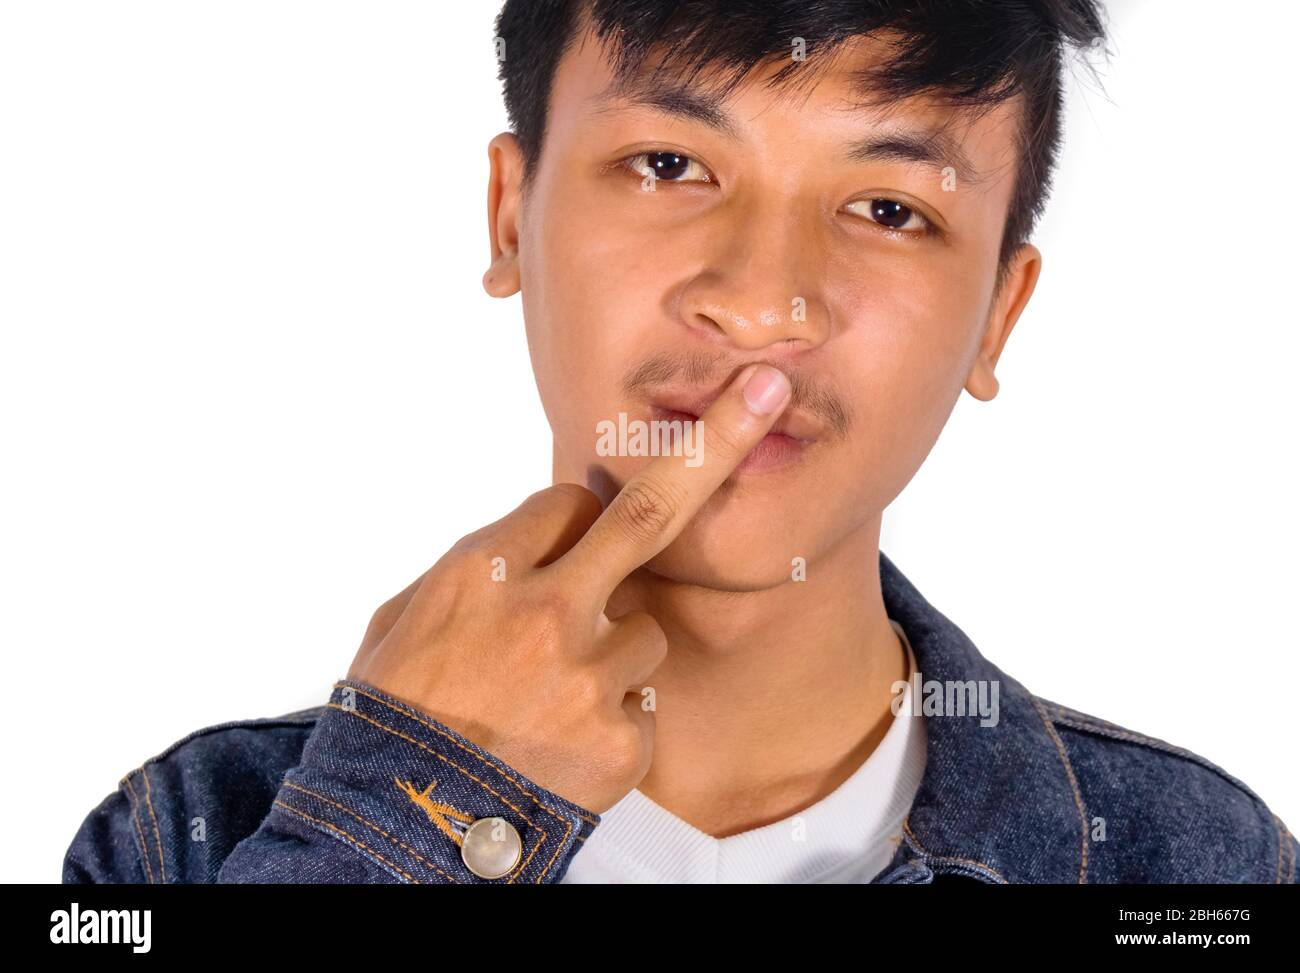 Fingers In Mouth Gay